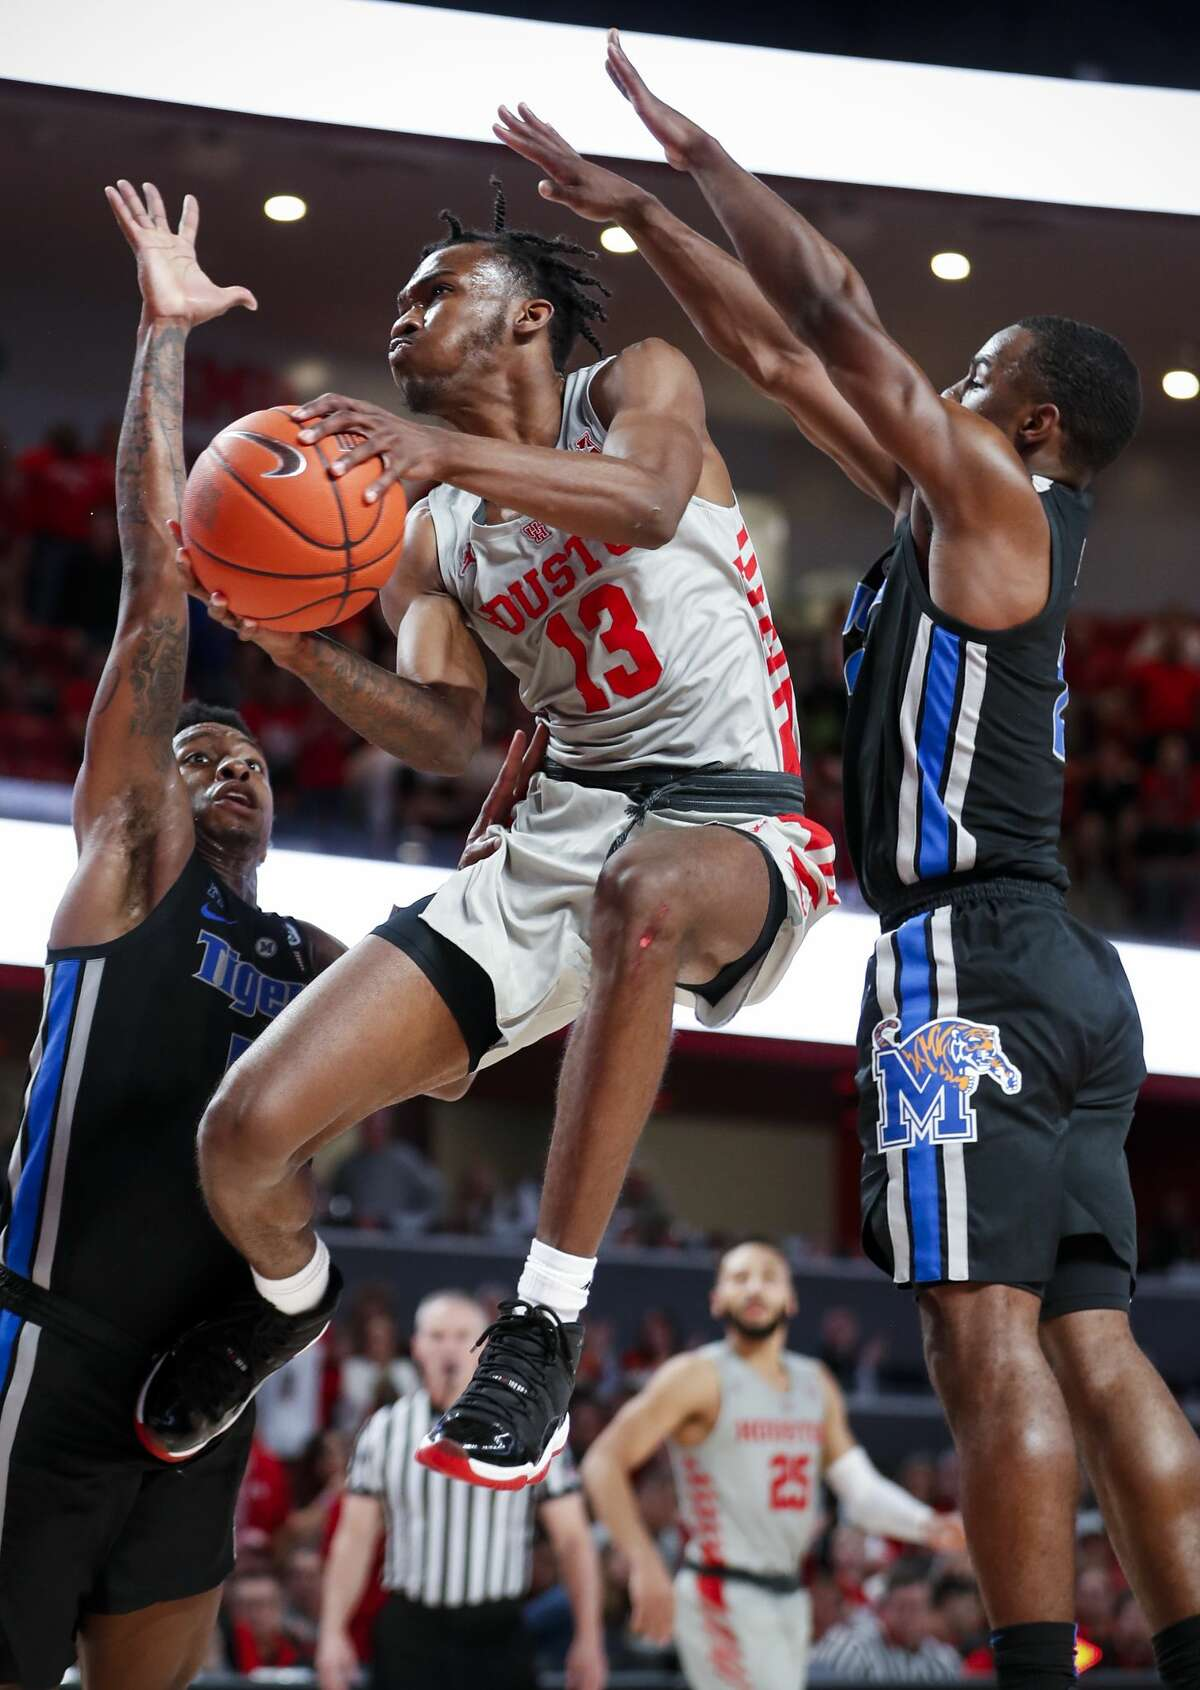 Houston guard Dejon Jarreau (13) drives to the basket between Memphis guards Kareem Brewton Jr. (5) and Alex Lomax (2) during the second half on a NCAA basketball game at Fertitta Center on Sunday, Jan. 6, 2019, in Houston.